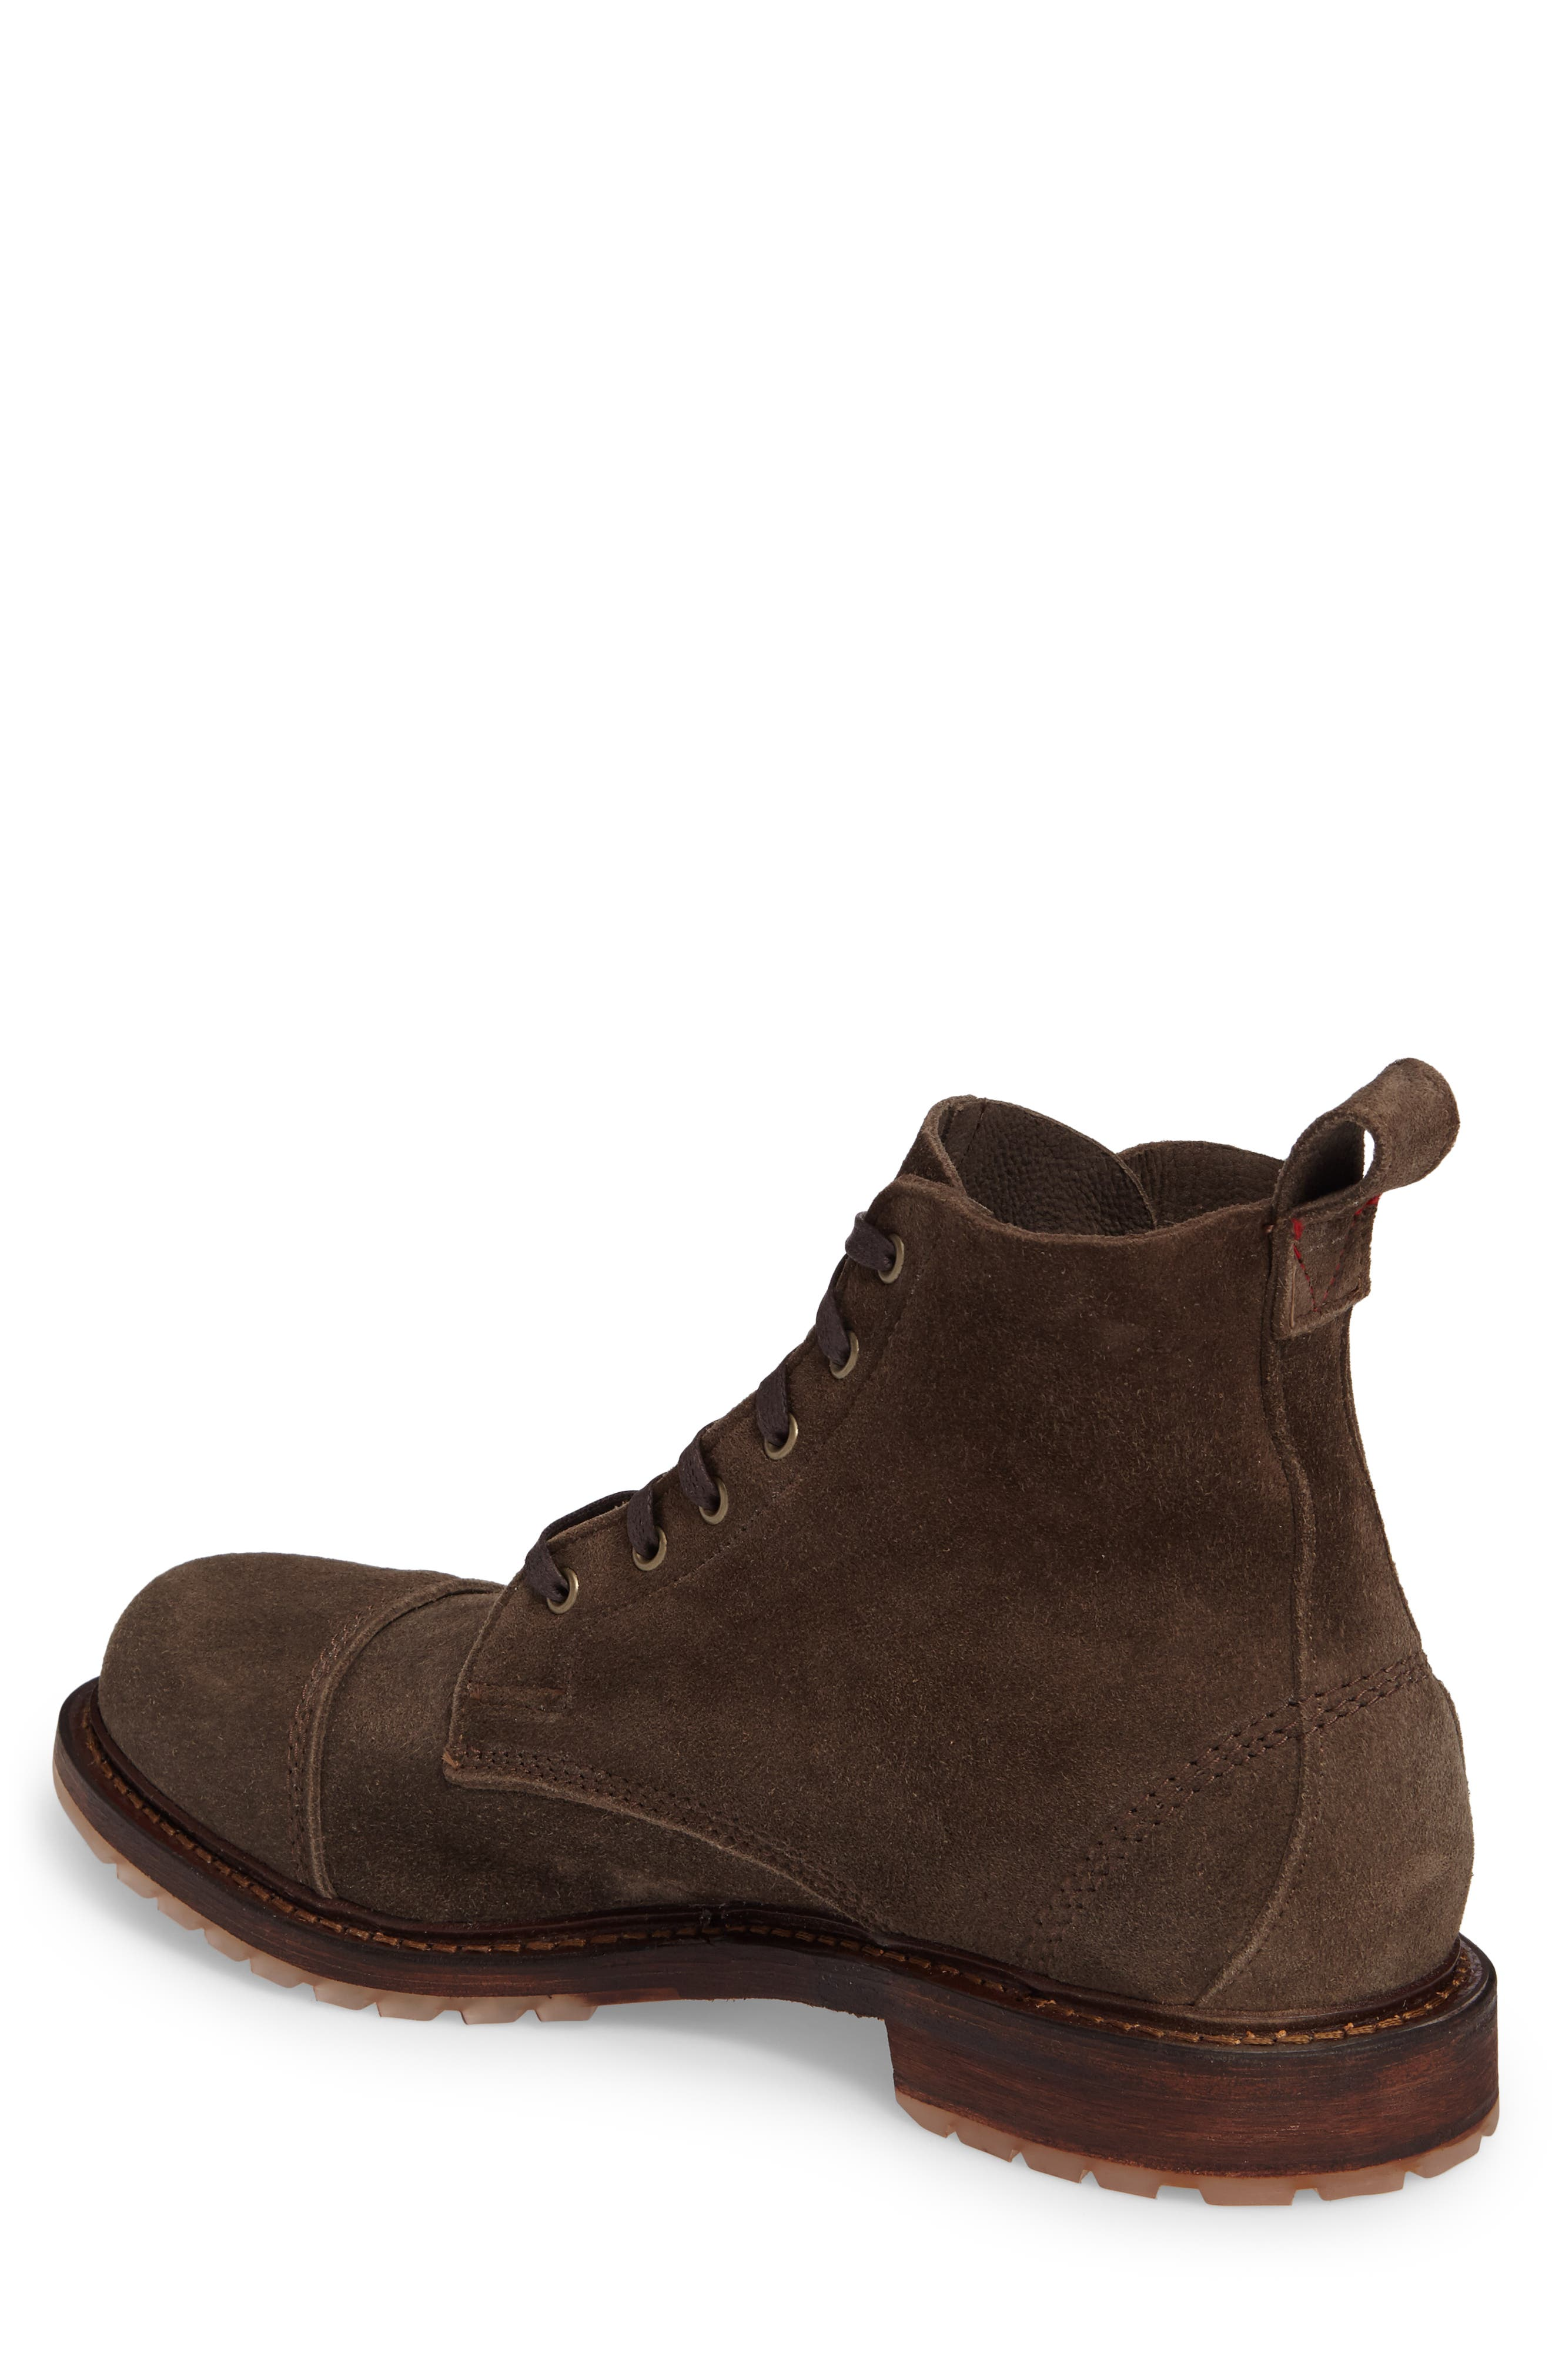 Caen Cap Toe Boot,                             Alternate thumbnail 2, color,                             Taupe Leather